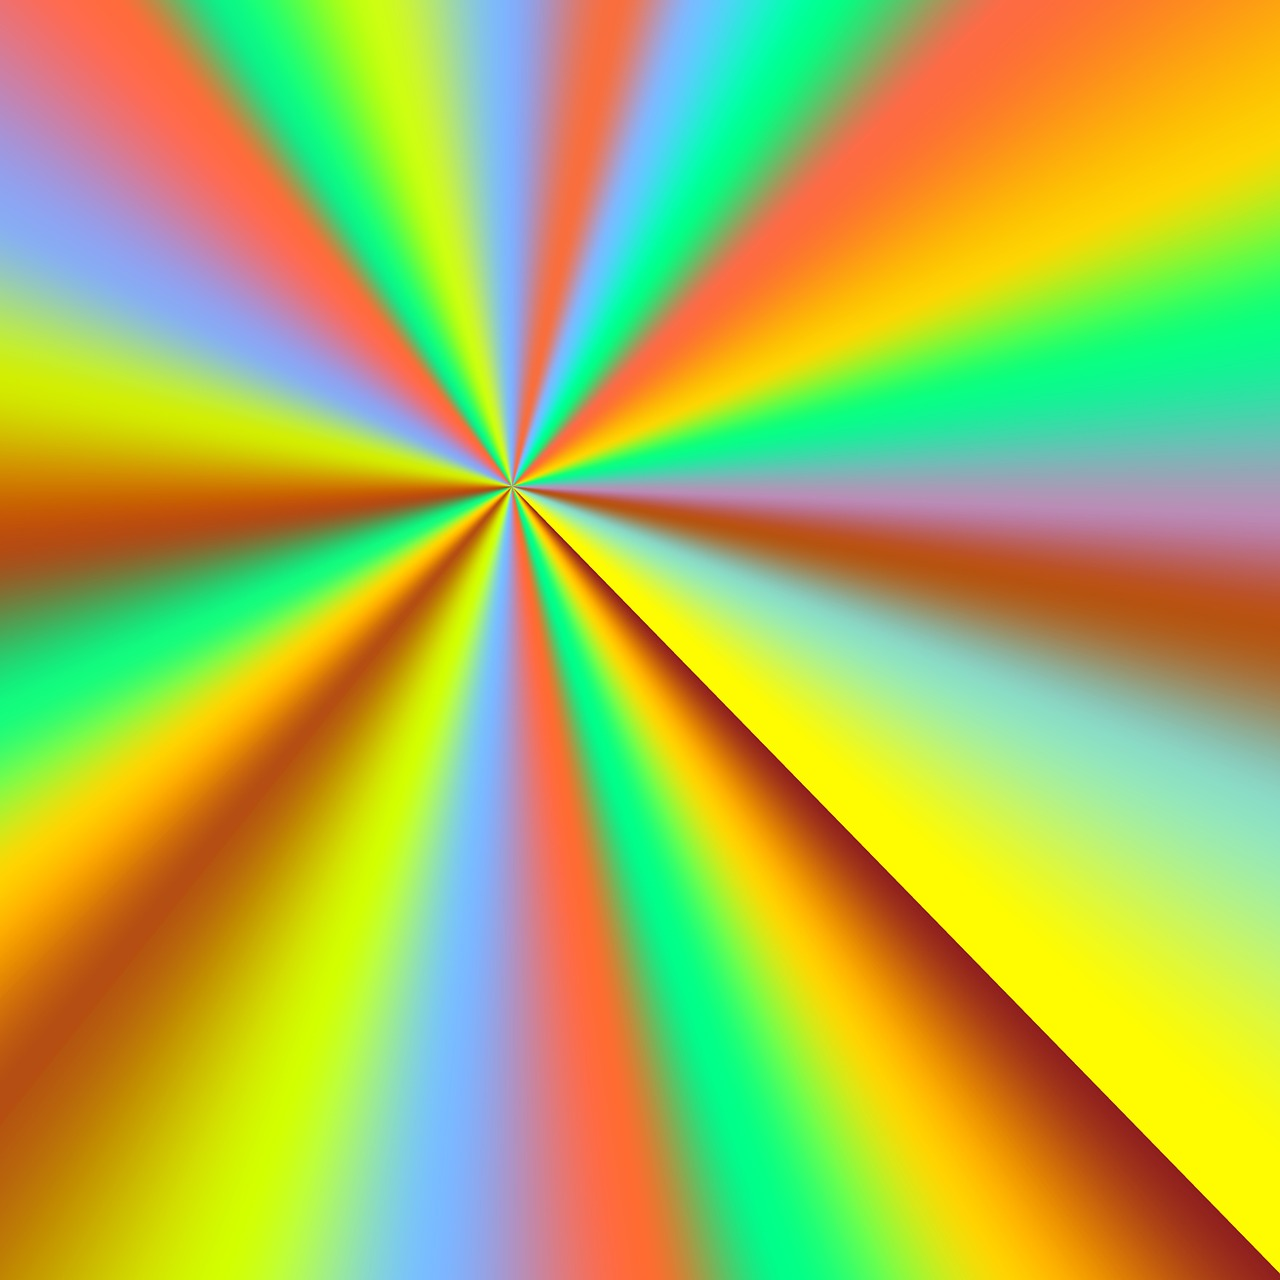 starburst colorful starburst background free picture